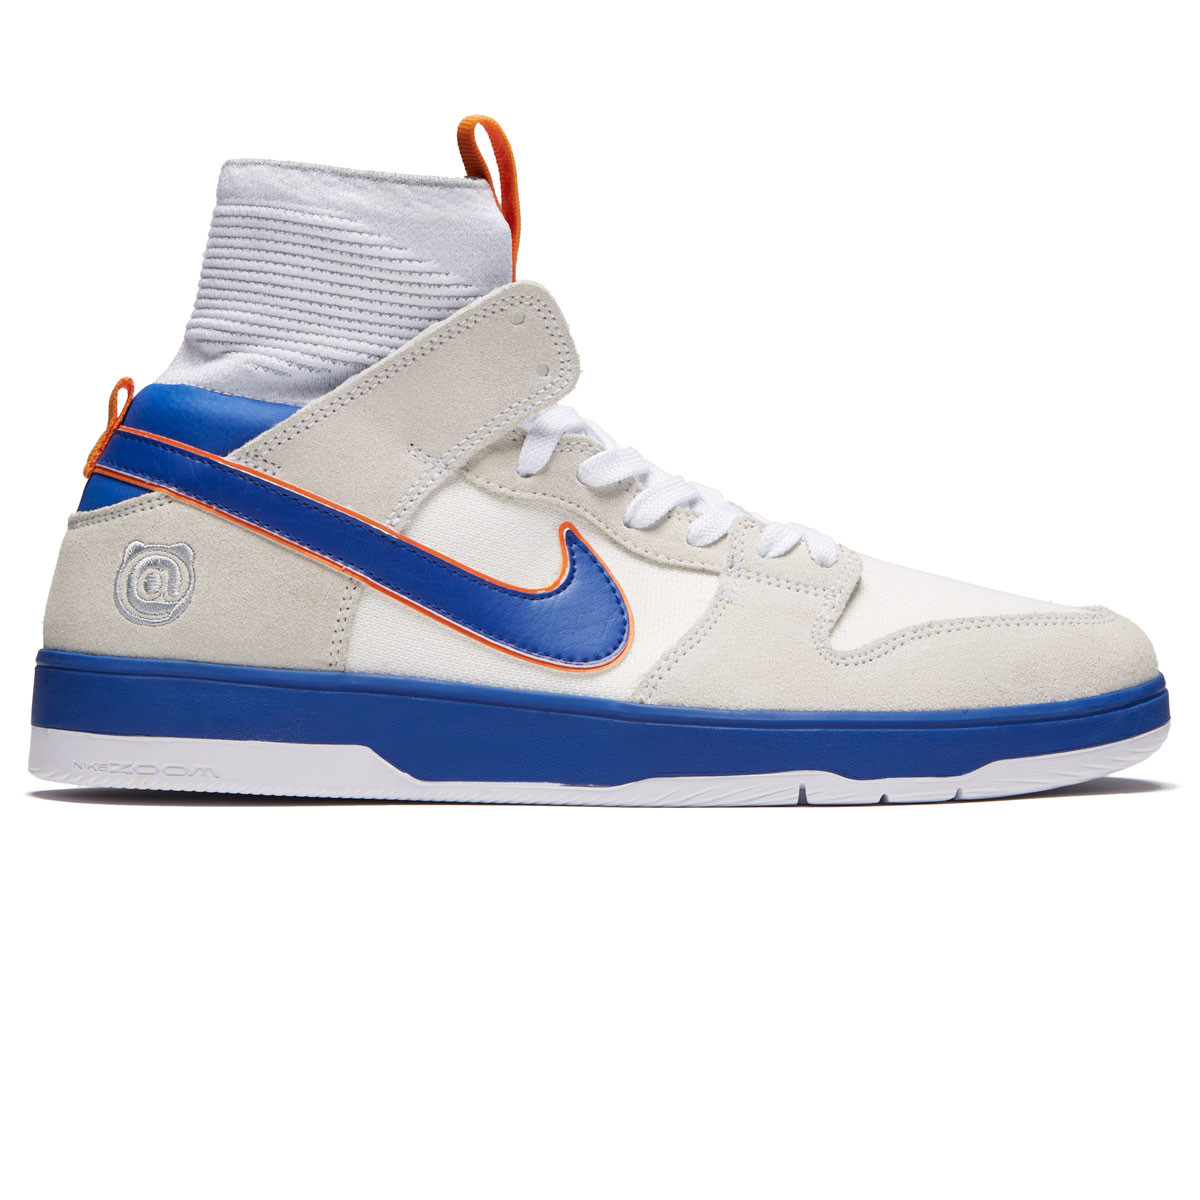 3bed8a3b8b2c Nike SB x Medicom Dunk High Elite QS Shoes - White College Blue Gold ...